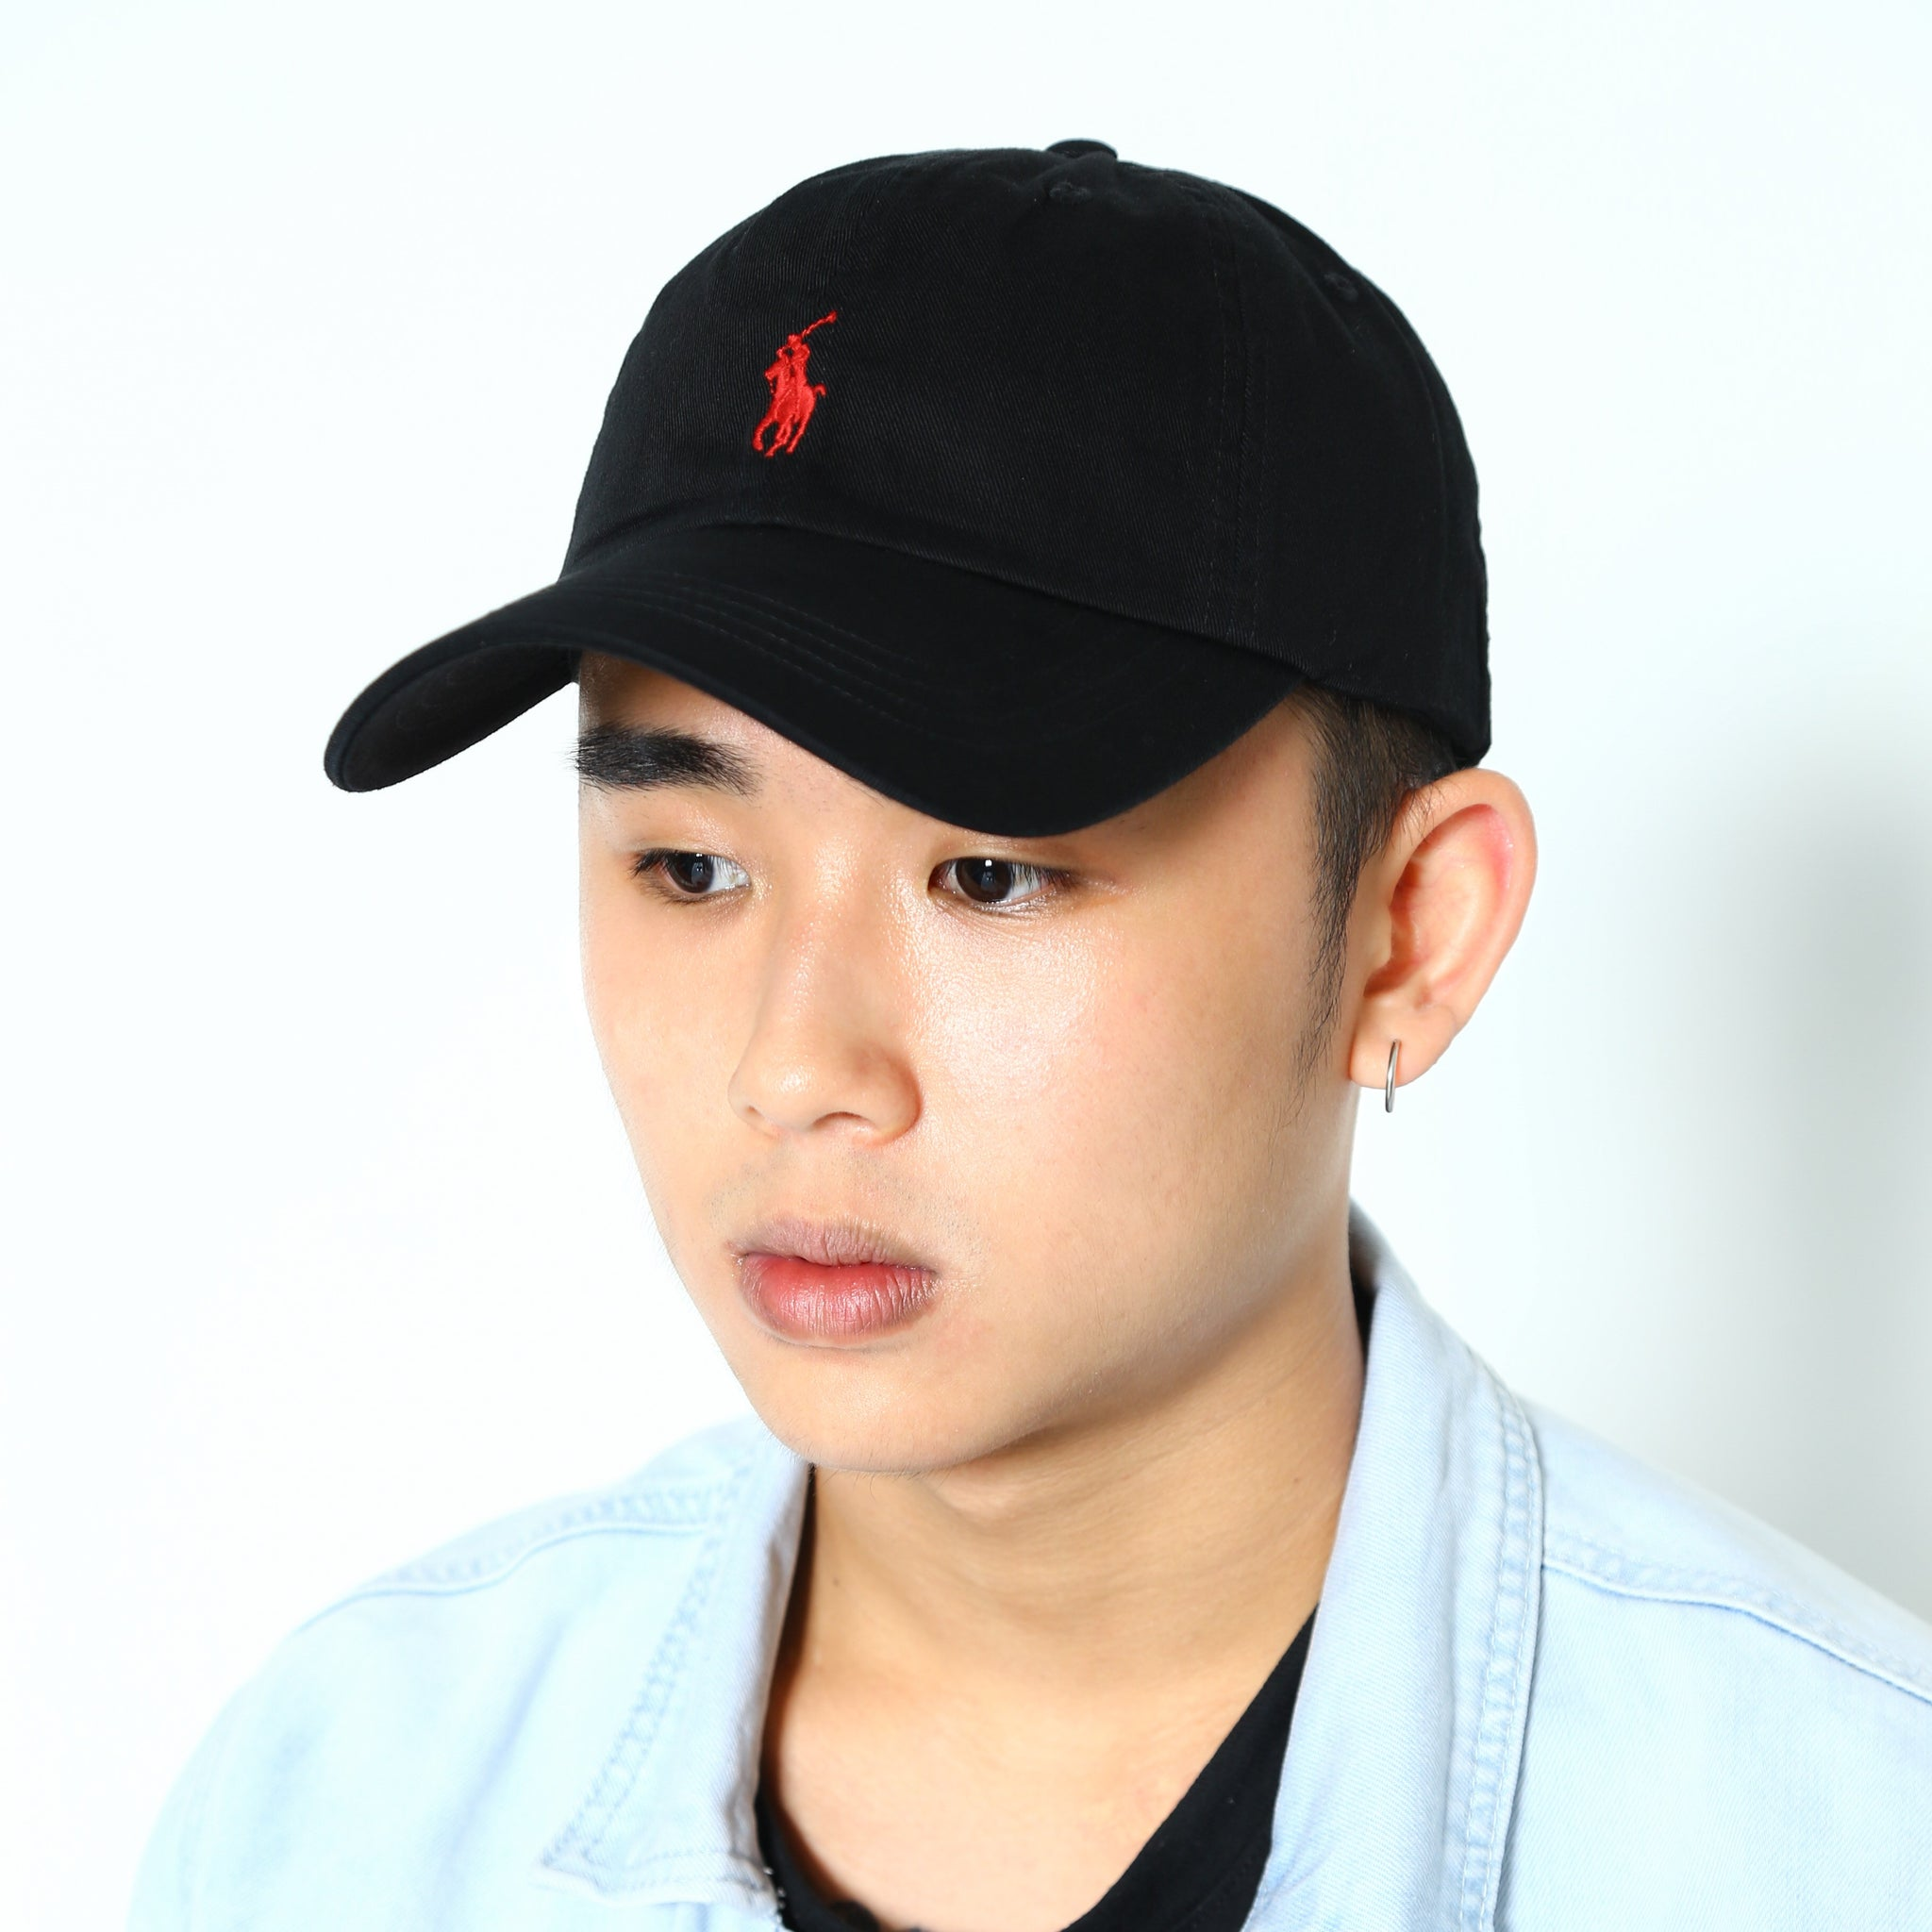 Polo Ralph Lauren Baseball Cap Black with Red Pony - Style Up 3a9125a4bee